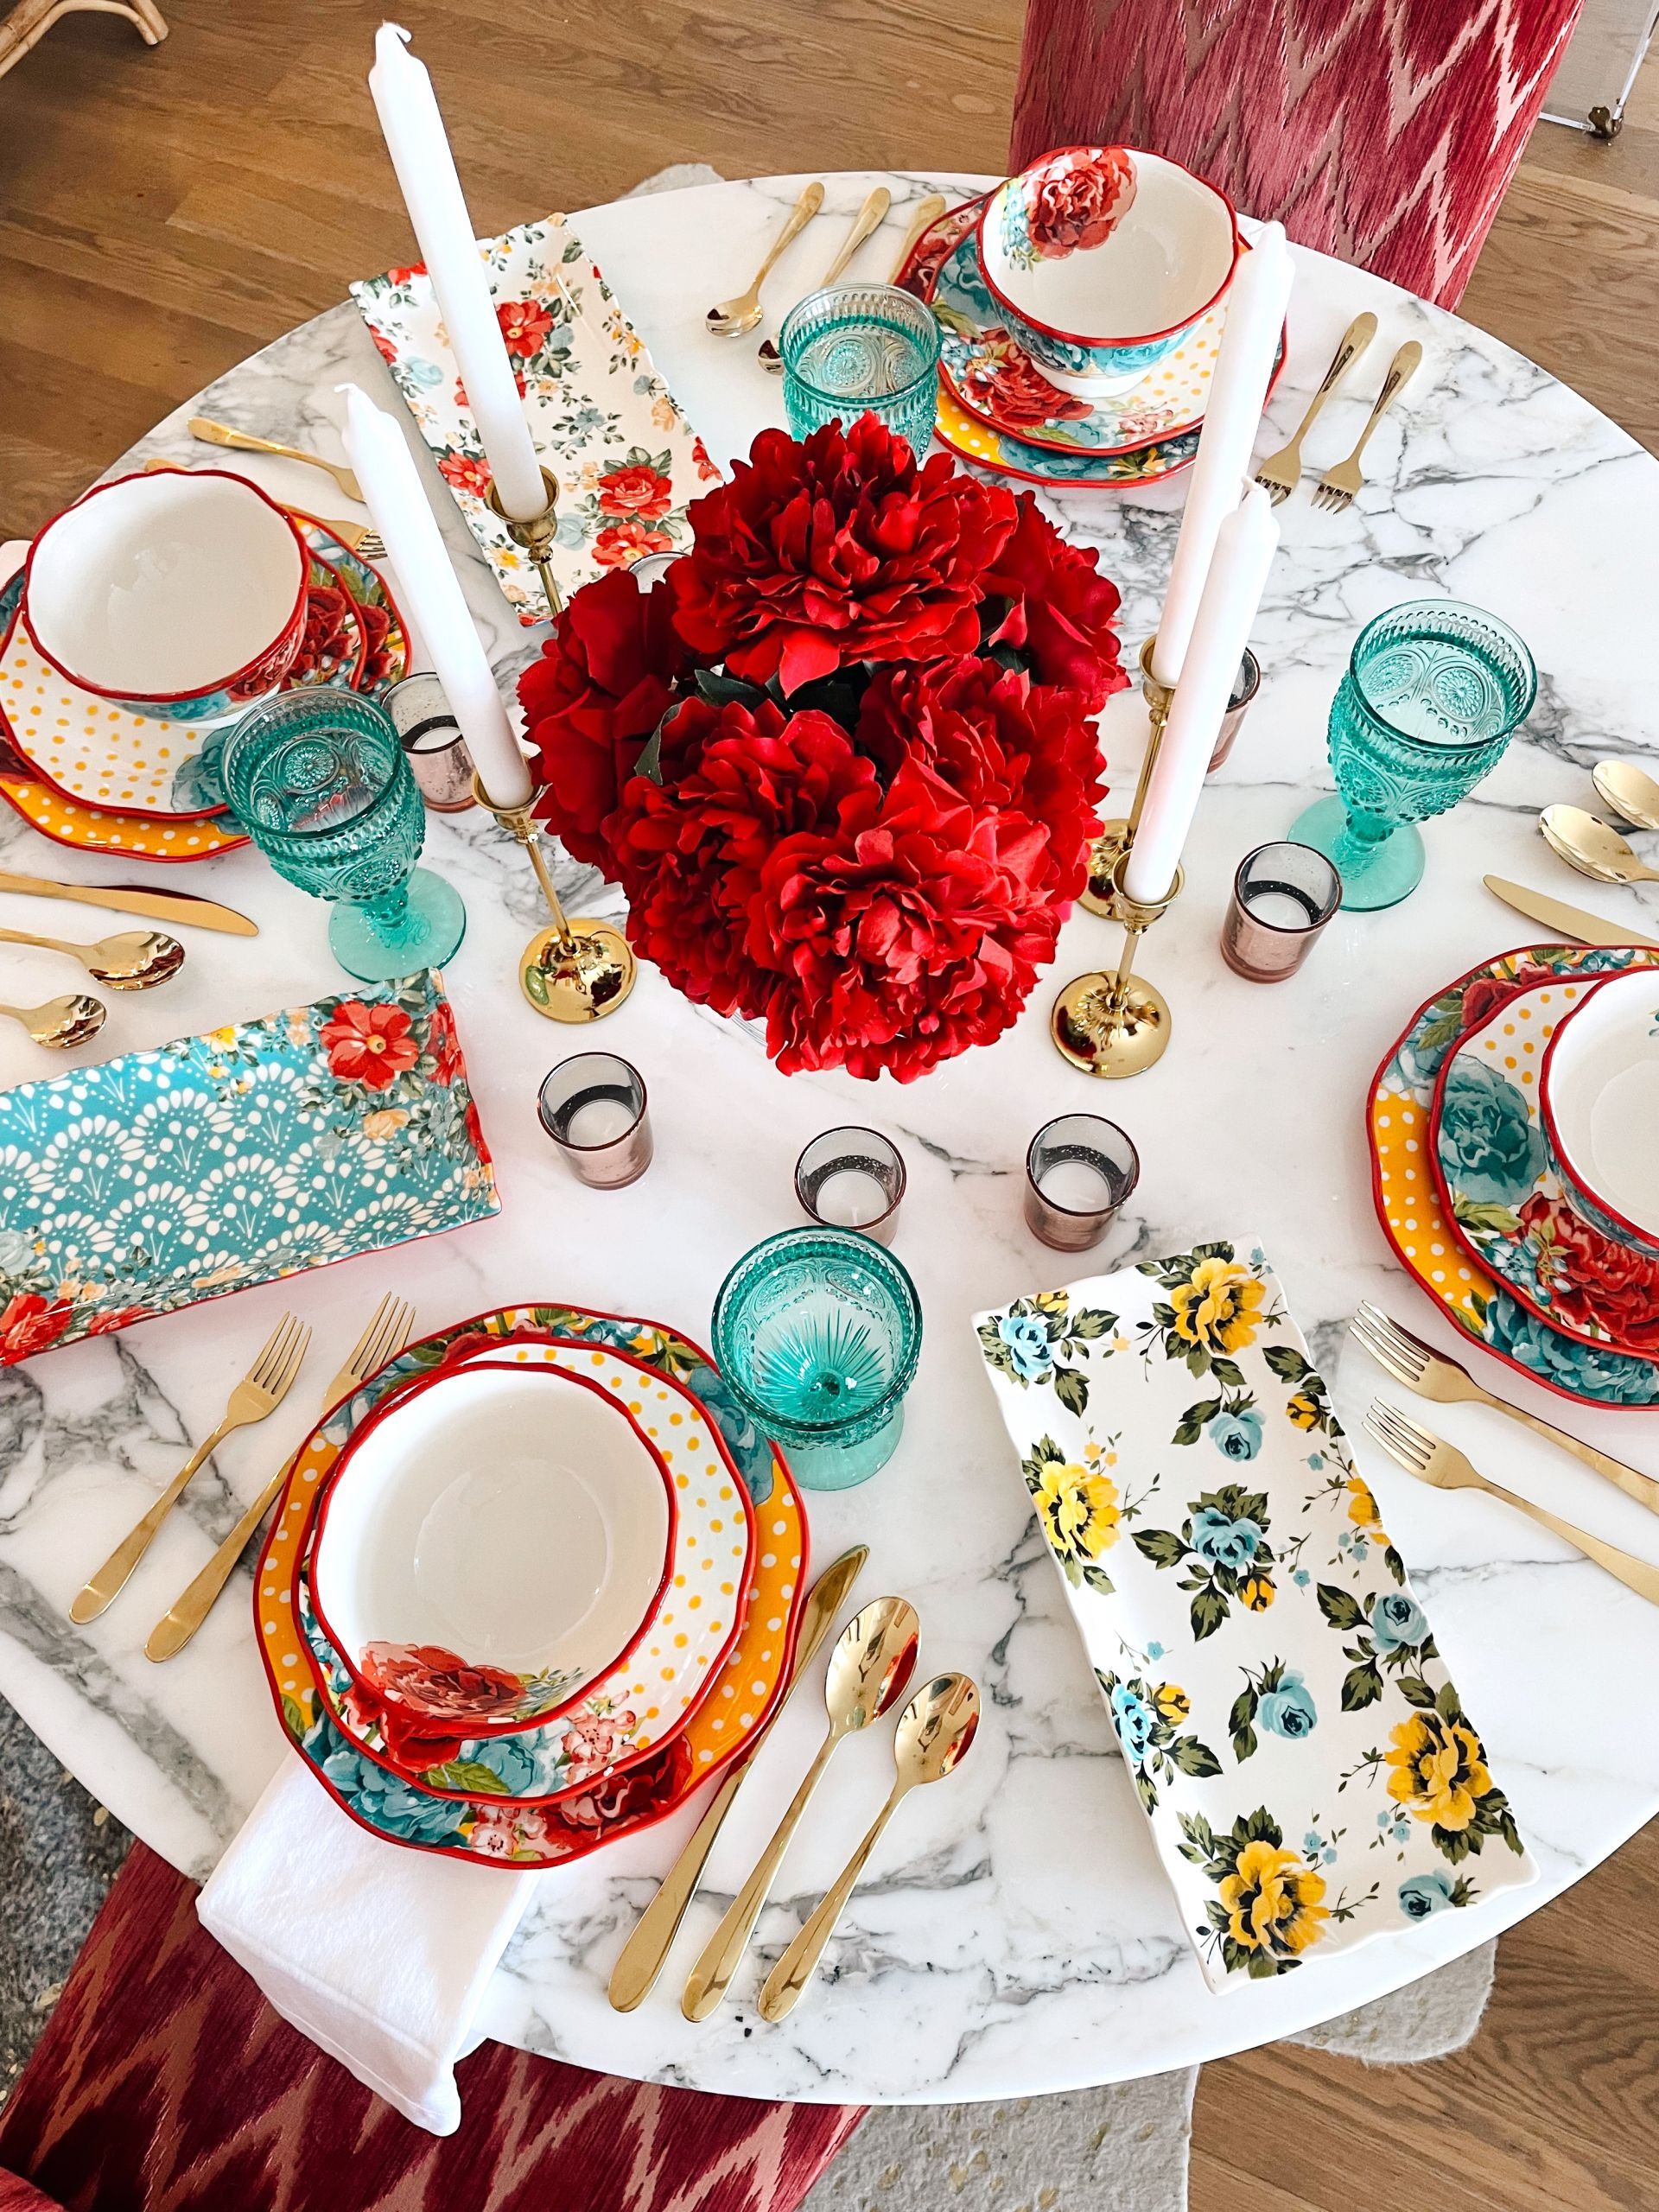 Summer Home Entertaining Finds from Walmart, summer party table setting, vibrant tablescape, Summer table decor, Summer dinner party ideas, affordable vibrant table top ideas, summer tabletop ideas, Walmart home decor, tropical decor ideas, tropical party ideas, girly party decor, gold flatware, gold accent table top ideas, Pioneer women dinnerware set